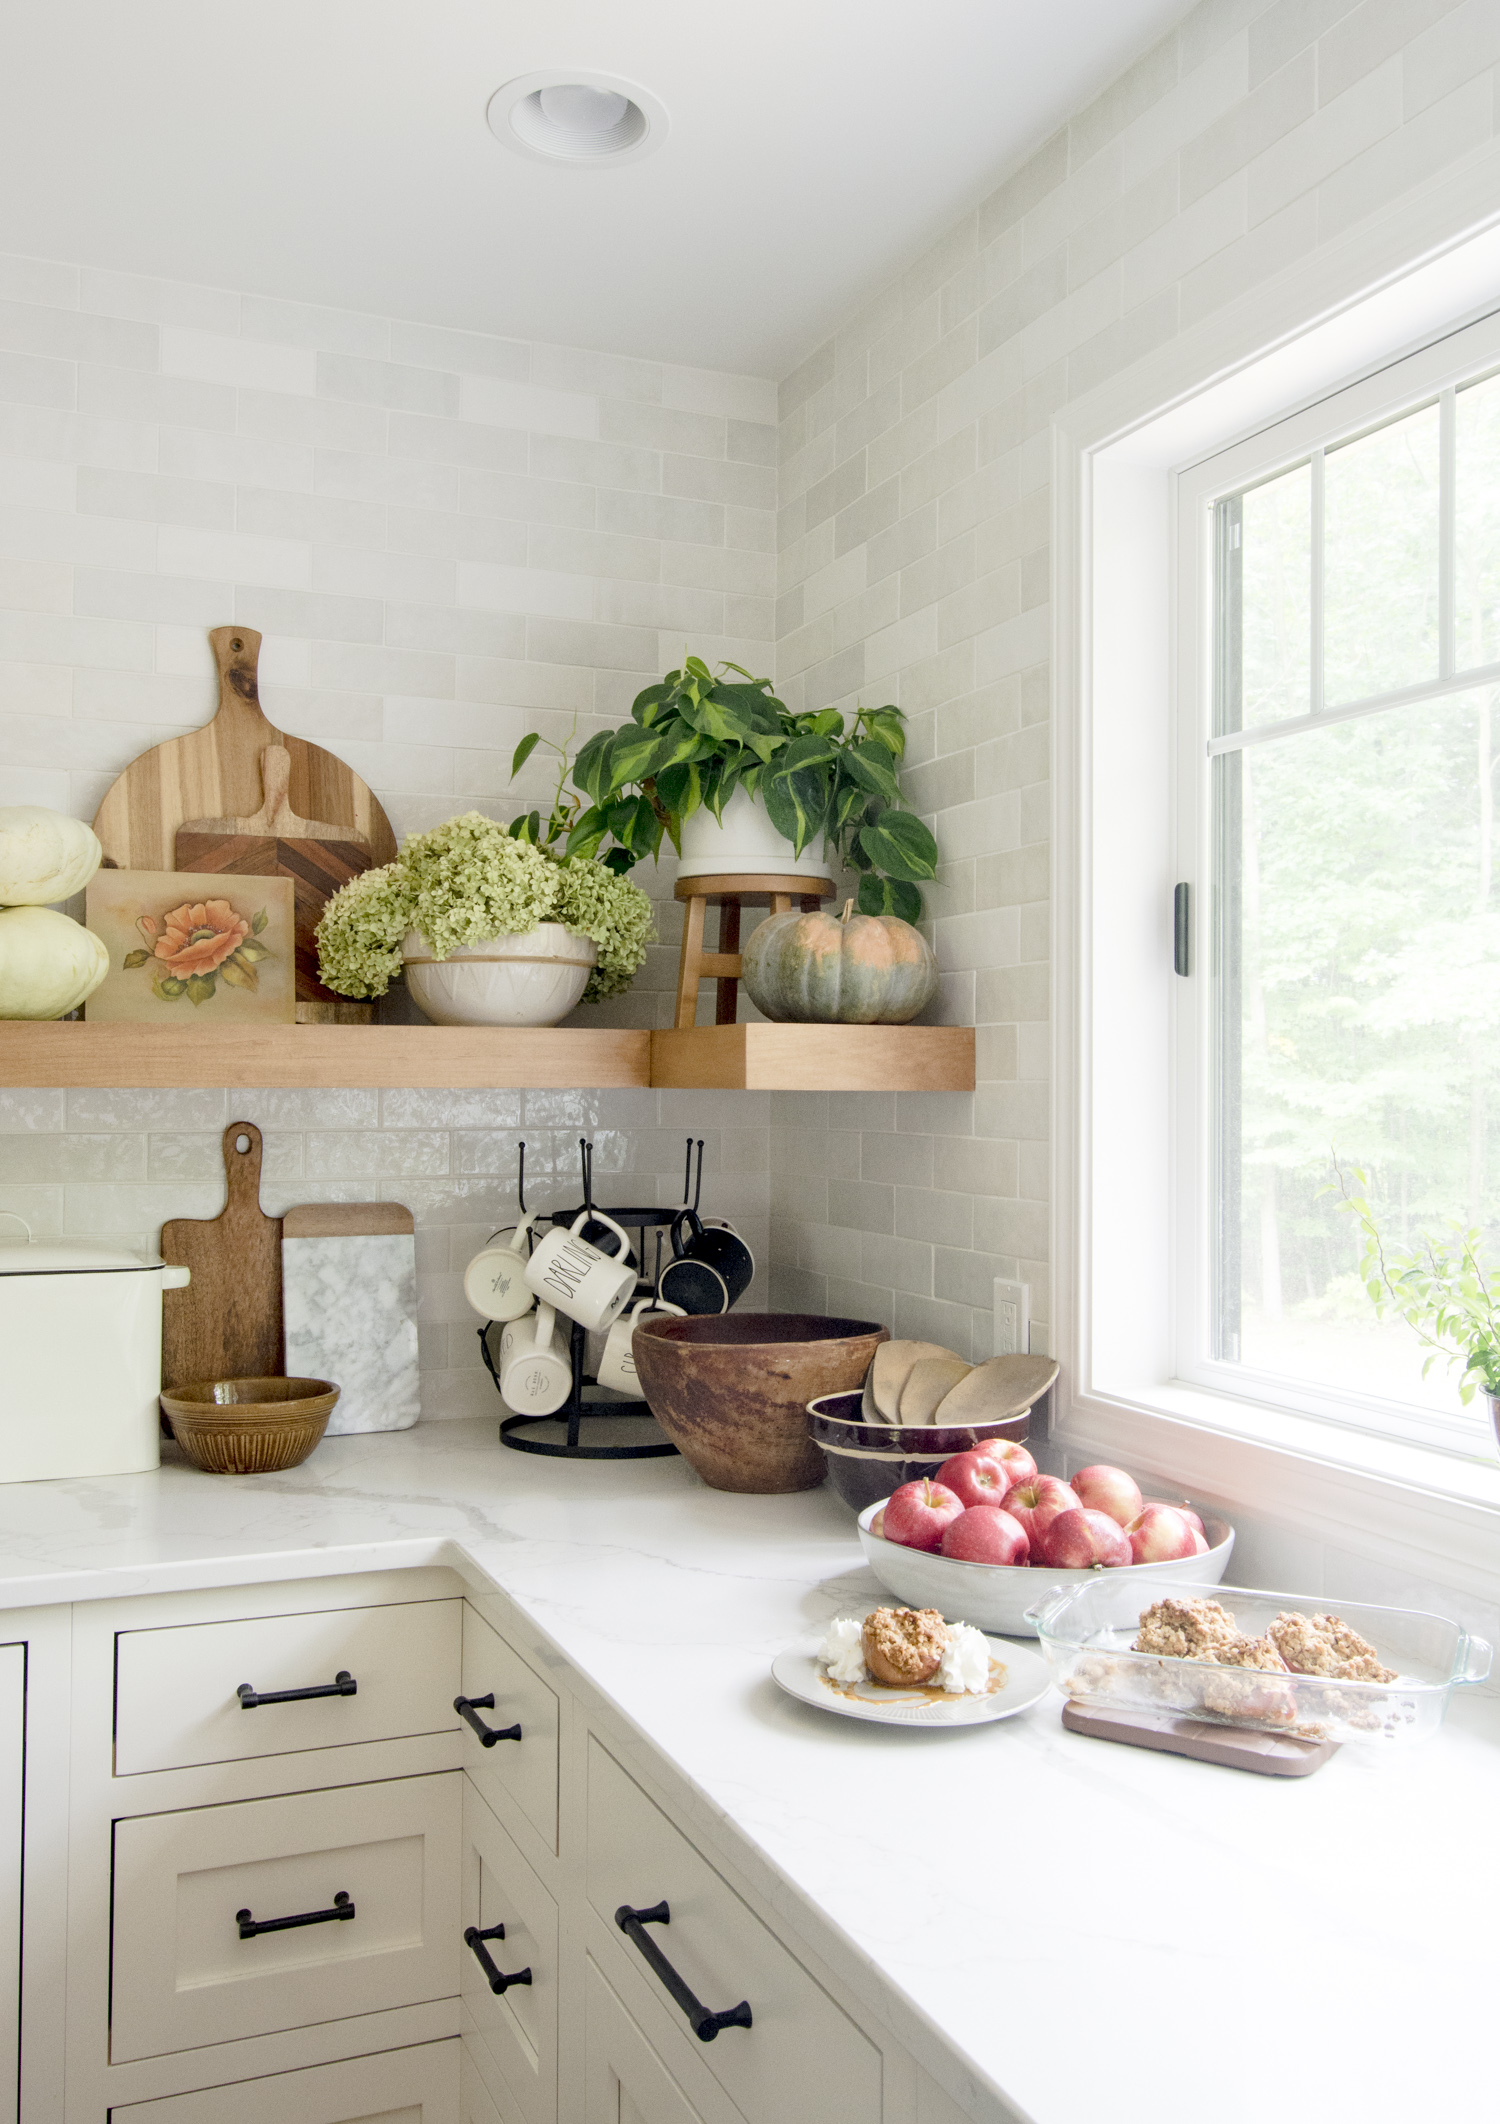 Love the corner open shelves in this farmhouse kitchen kellyelko.com #kitchen #kitchendecor #kitchenshelves #farmhousekitchen #neutraldecor #backsplash